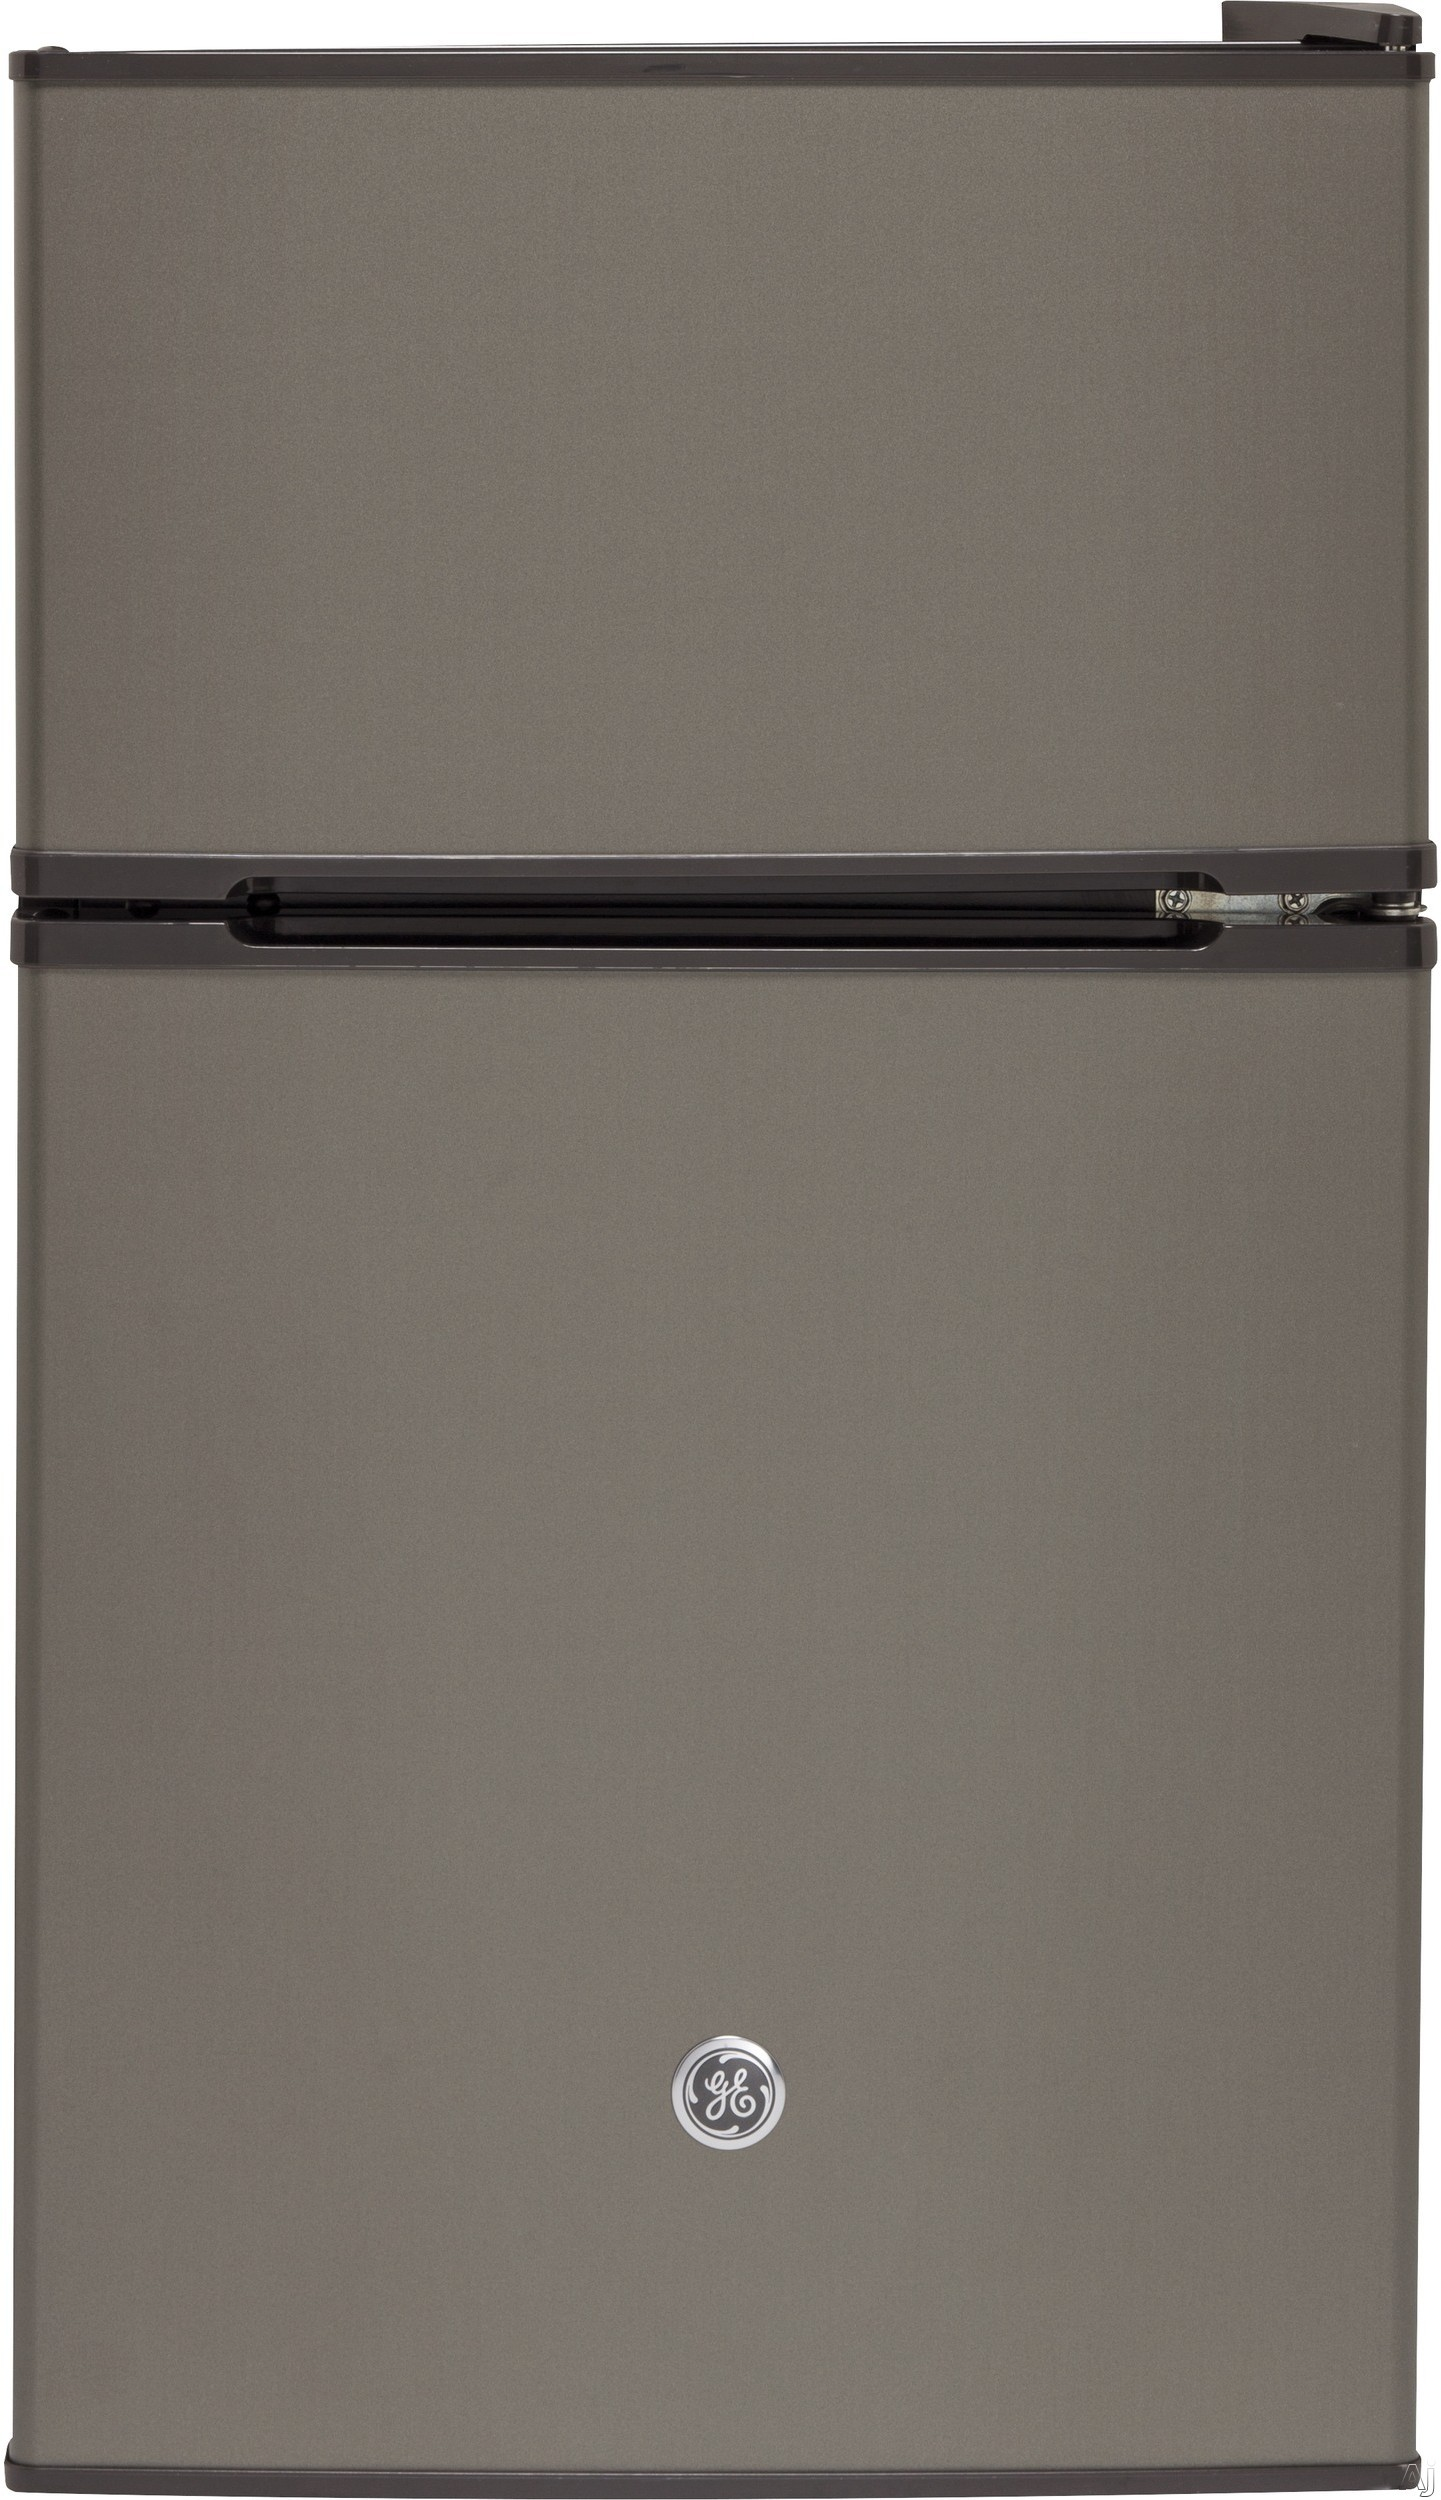 GE GDE03GMKED 19 Inch Top Freezer Compact Refrigerator with 2 Glass Shelves, Storage Drawer, 2 Door Bins, Beverage Can Door Bin, Freezer Door Bin, ENERGY STAR and Mini Ice Cube Tray: Slate